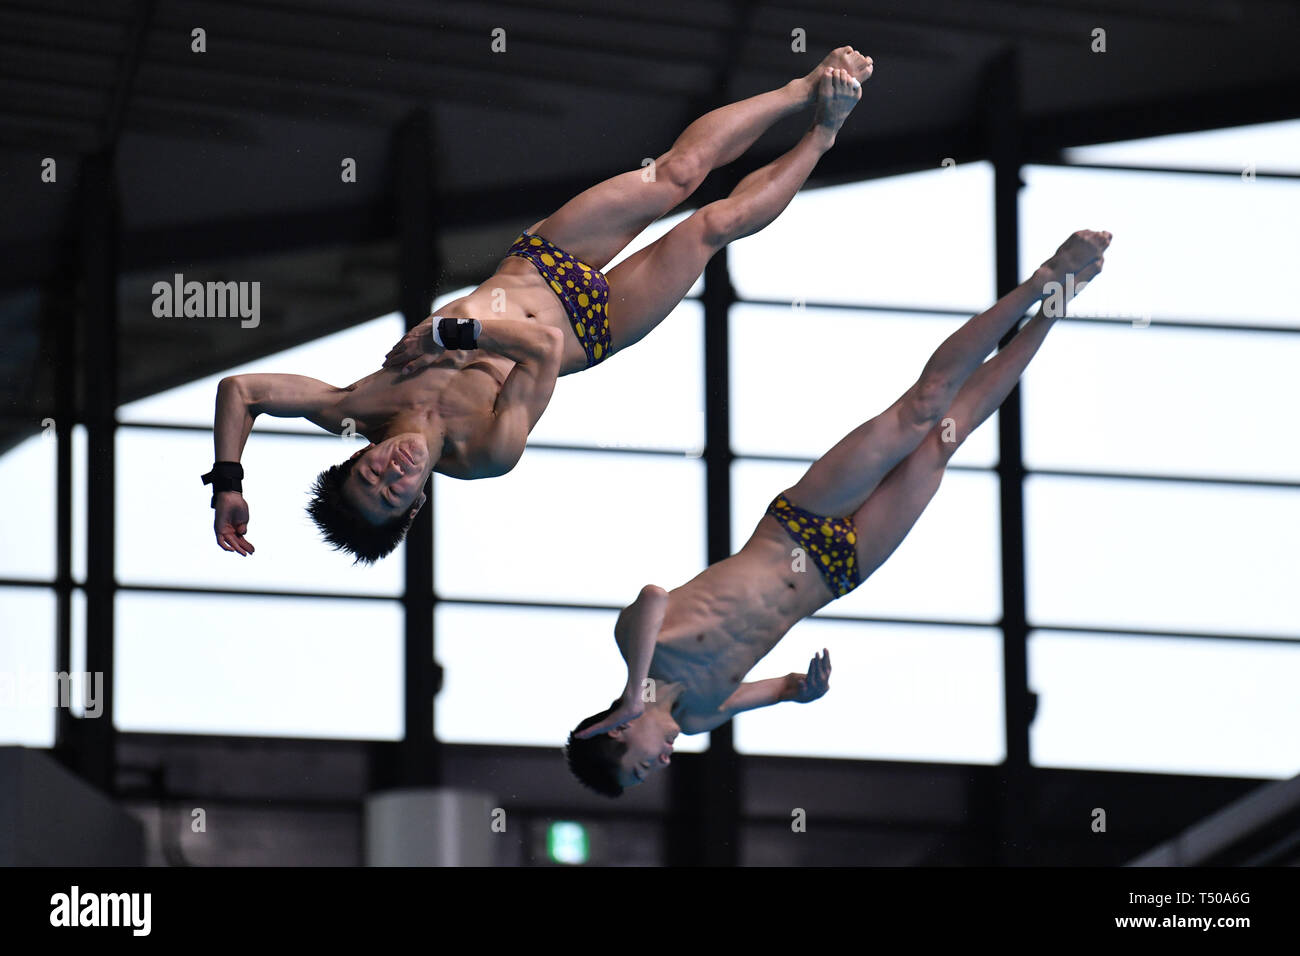 Tetsuki Takakuwa & Reo Sakata, APRIL 19, 2019 - Diving : Japan Indoor Diving Championship 2019 Men's Synchronised 3m Springboard Final at Tatsumi International Swimming Center, Tokyo, Japan. (Photo by MATSUO.K/AFLO SPORT) Stock Photo